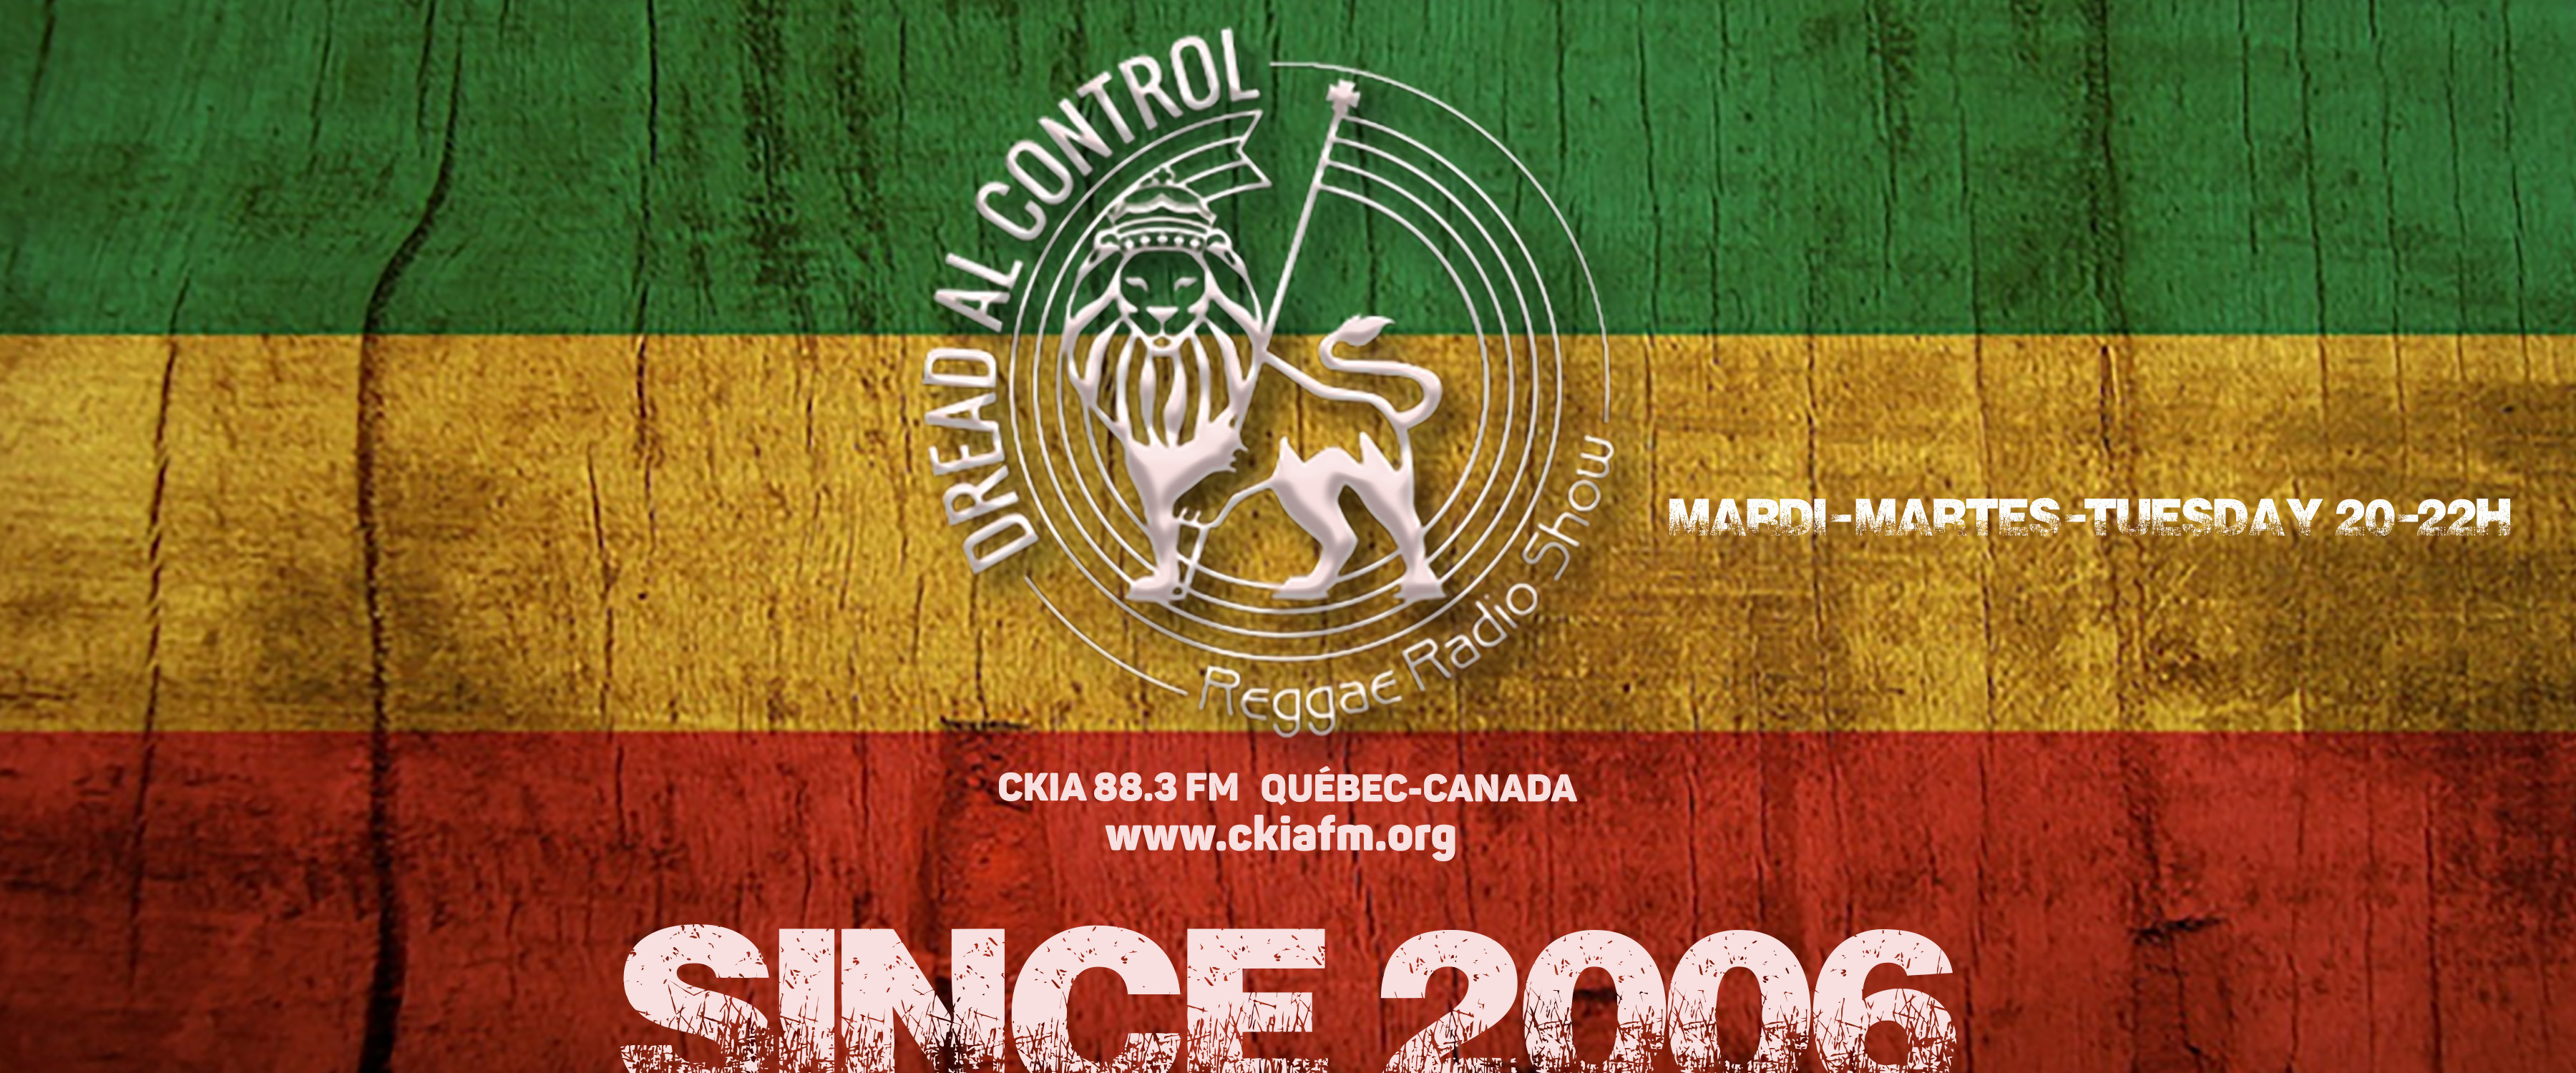 Playlist Best of 2018 Dread Al Control Reggae Radio Show 2018-01-08